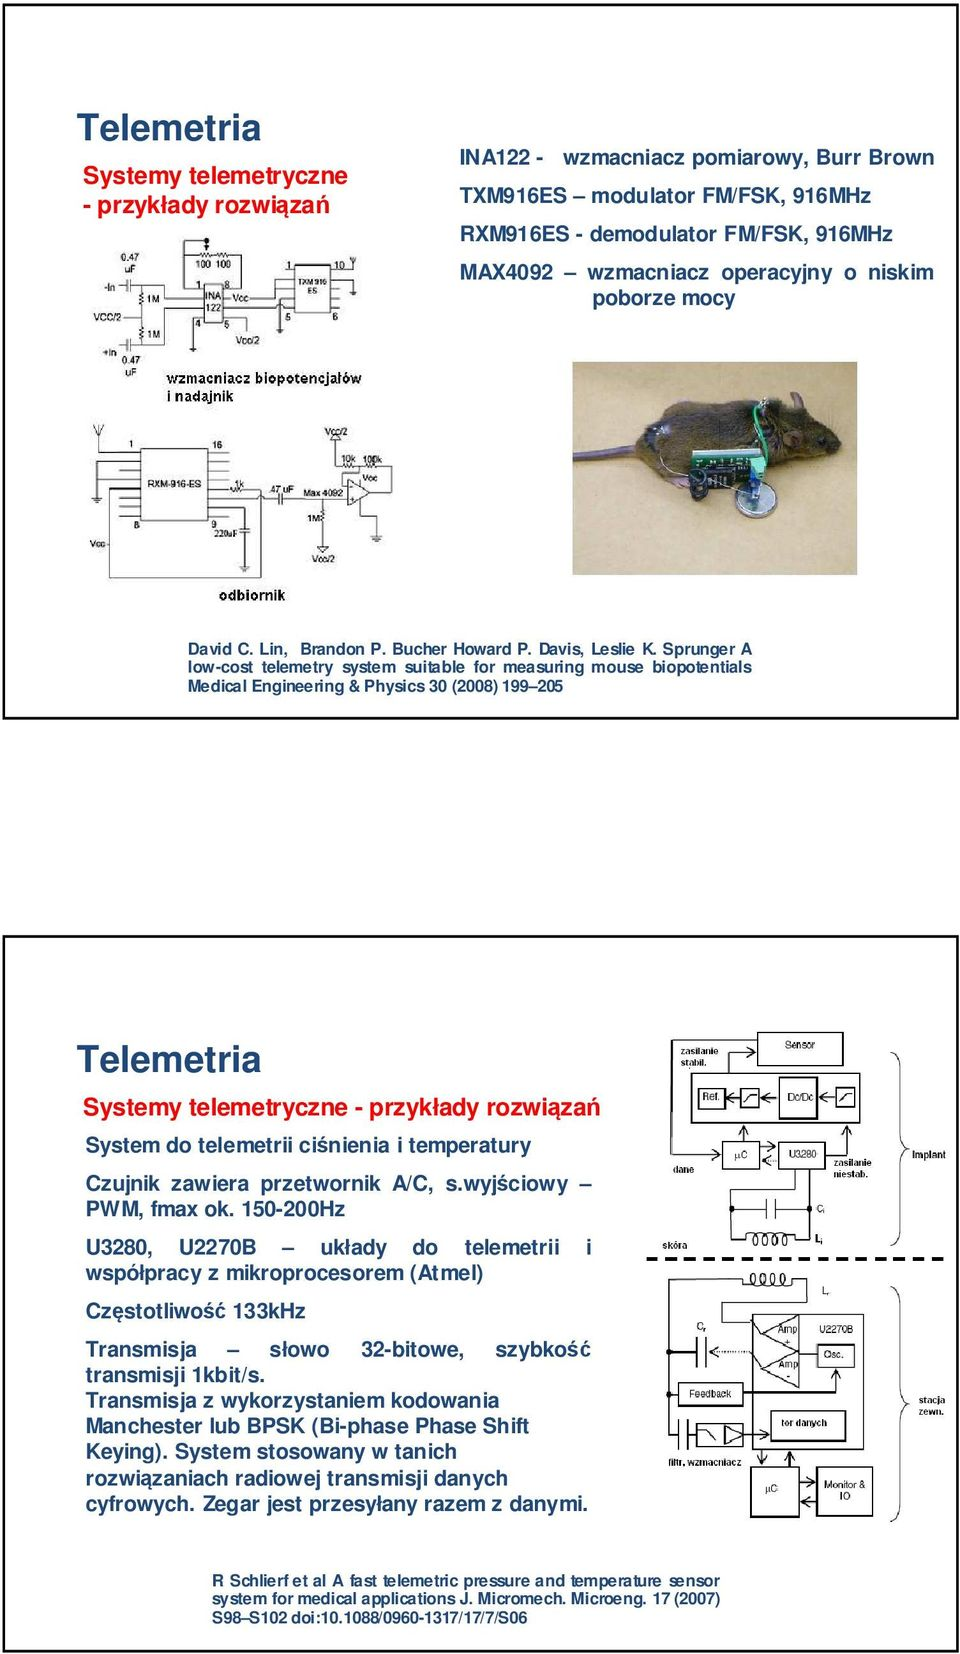 Sprunger A low-cost telemetry system suitable for measuring mouse biopotentials Medical Engineering & Physics 30 (2008) 199 205 Telemetria Systemy telemetryczne - przykłady rozwiązań System do